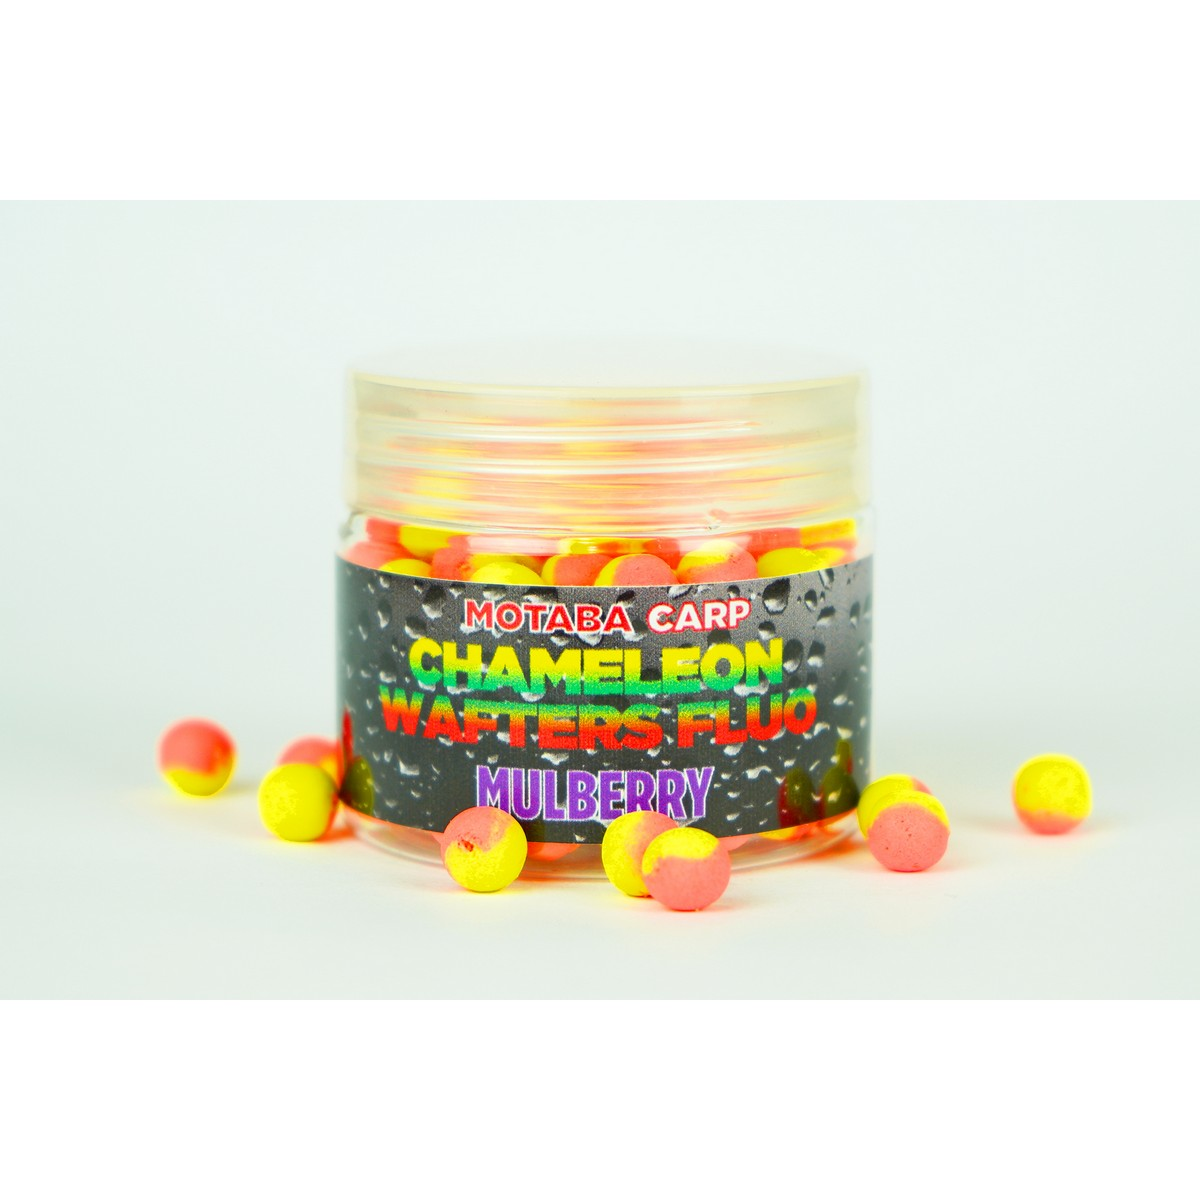 MOTABA CARP WAFTERS CHAMELEON FLUO EPERFA 12 MM 30G